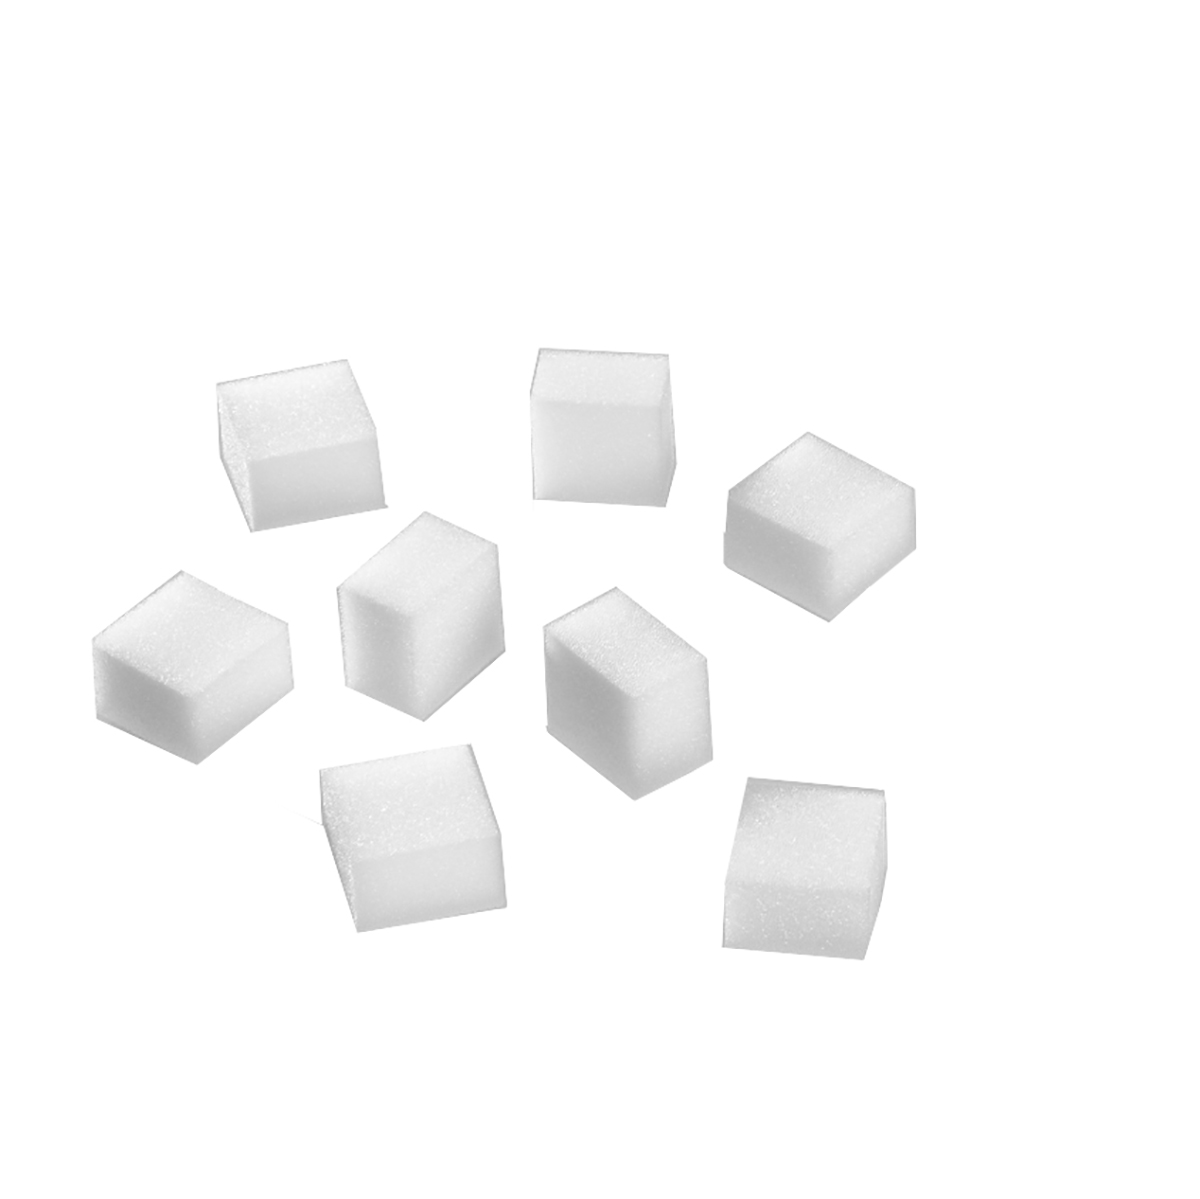 Foam Blocks Image